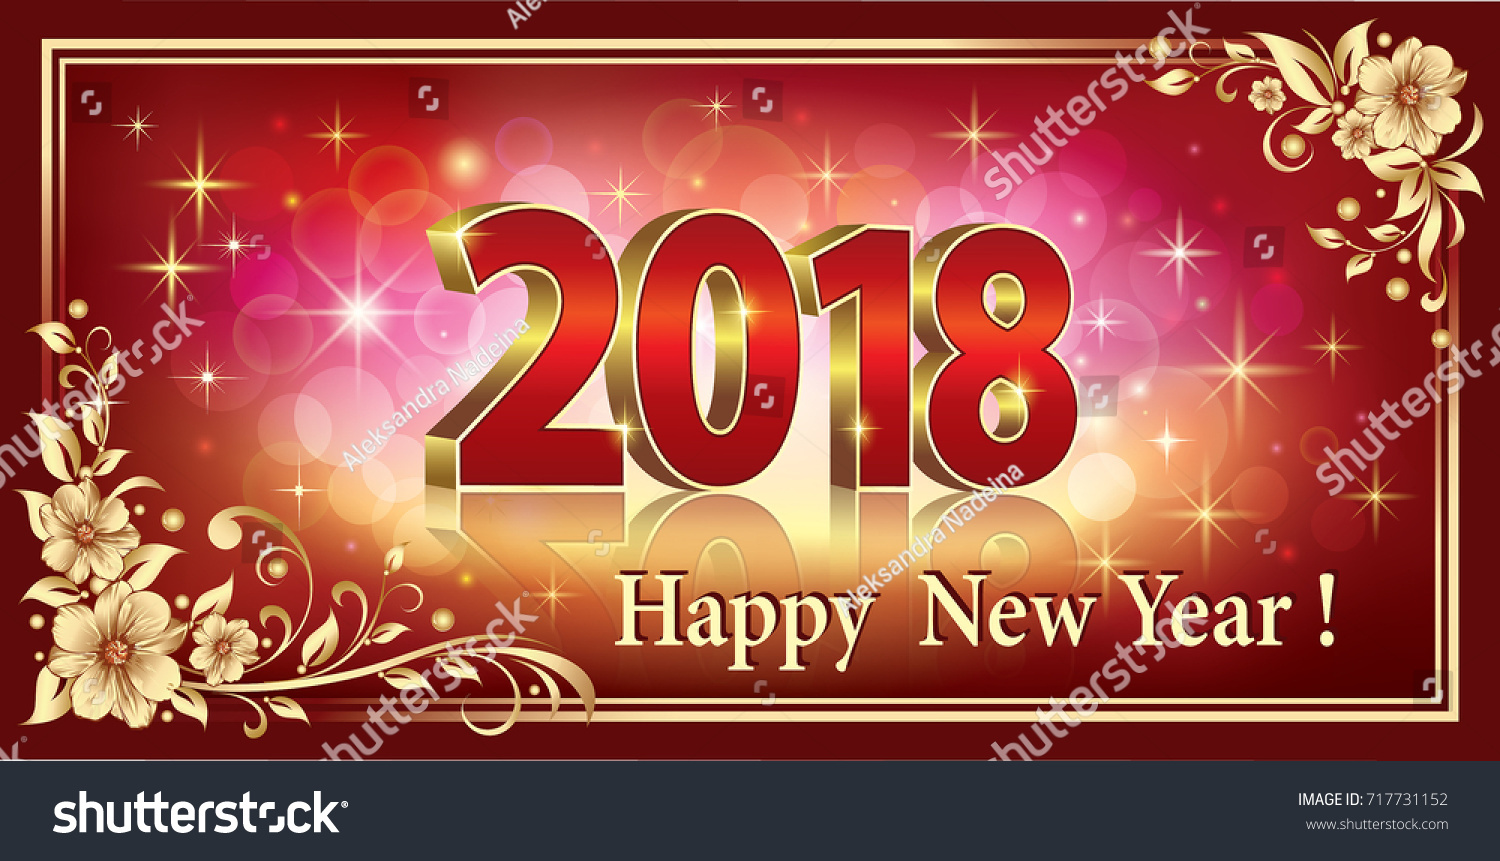 postcard happy new year 2018 in a frame with a floral ornament on a red background